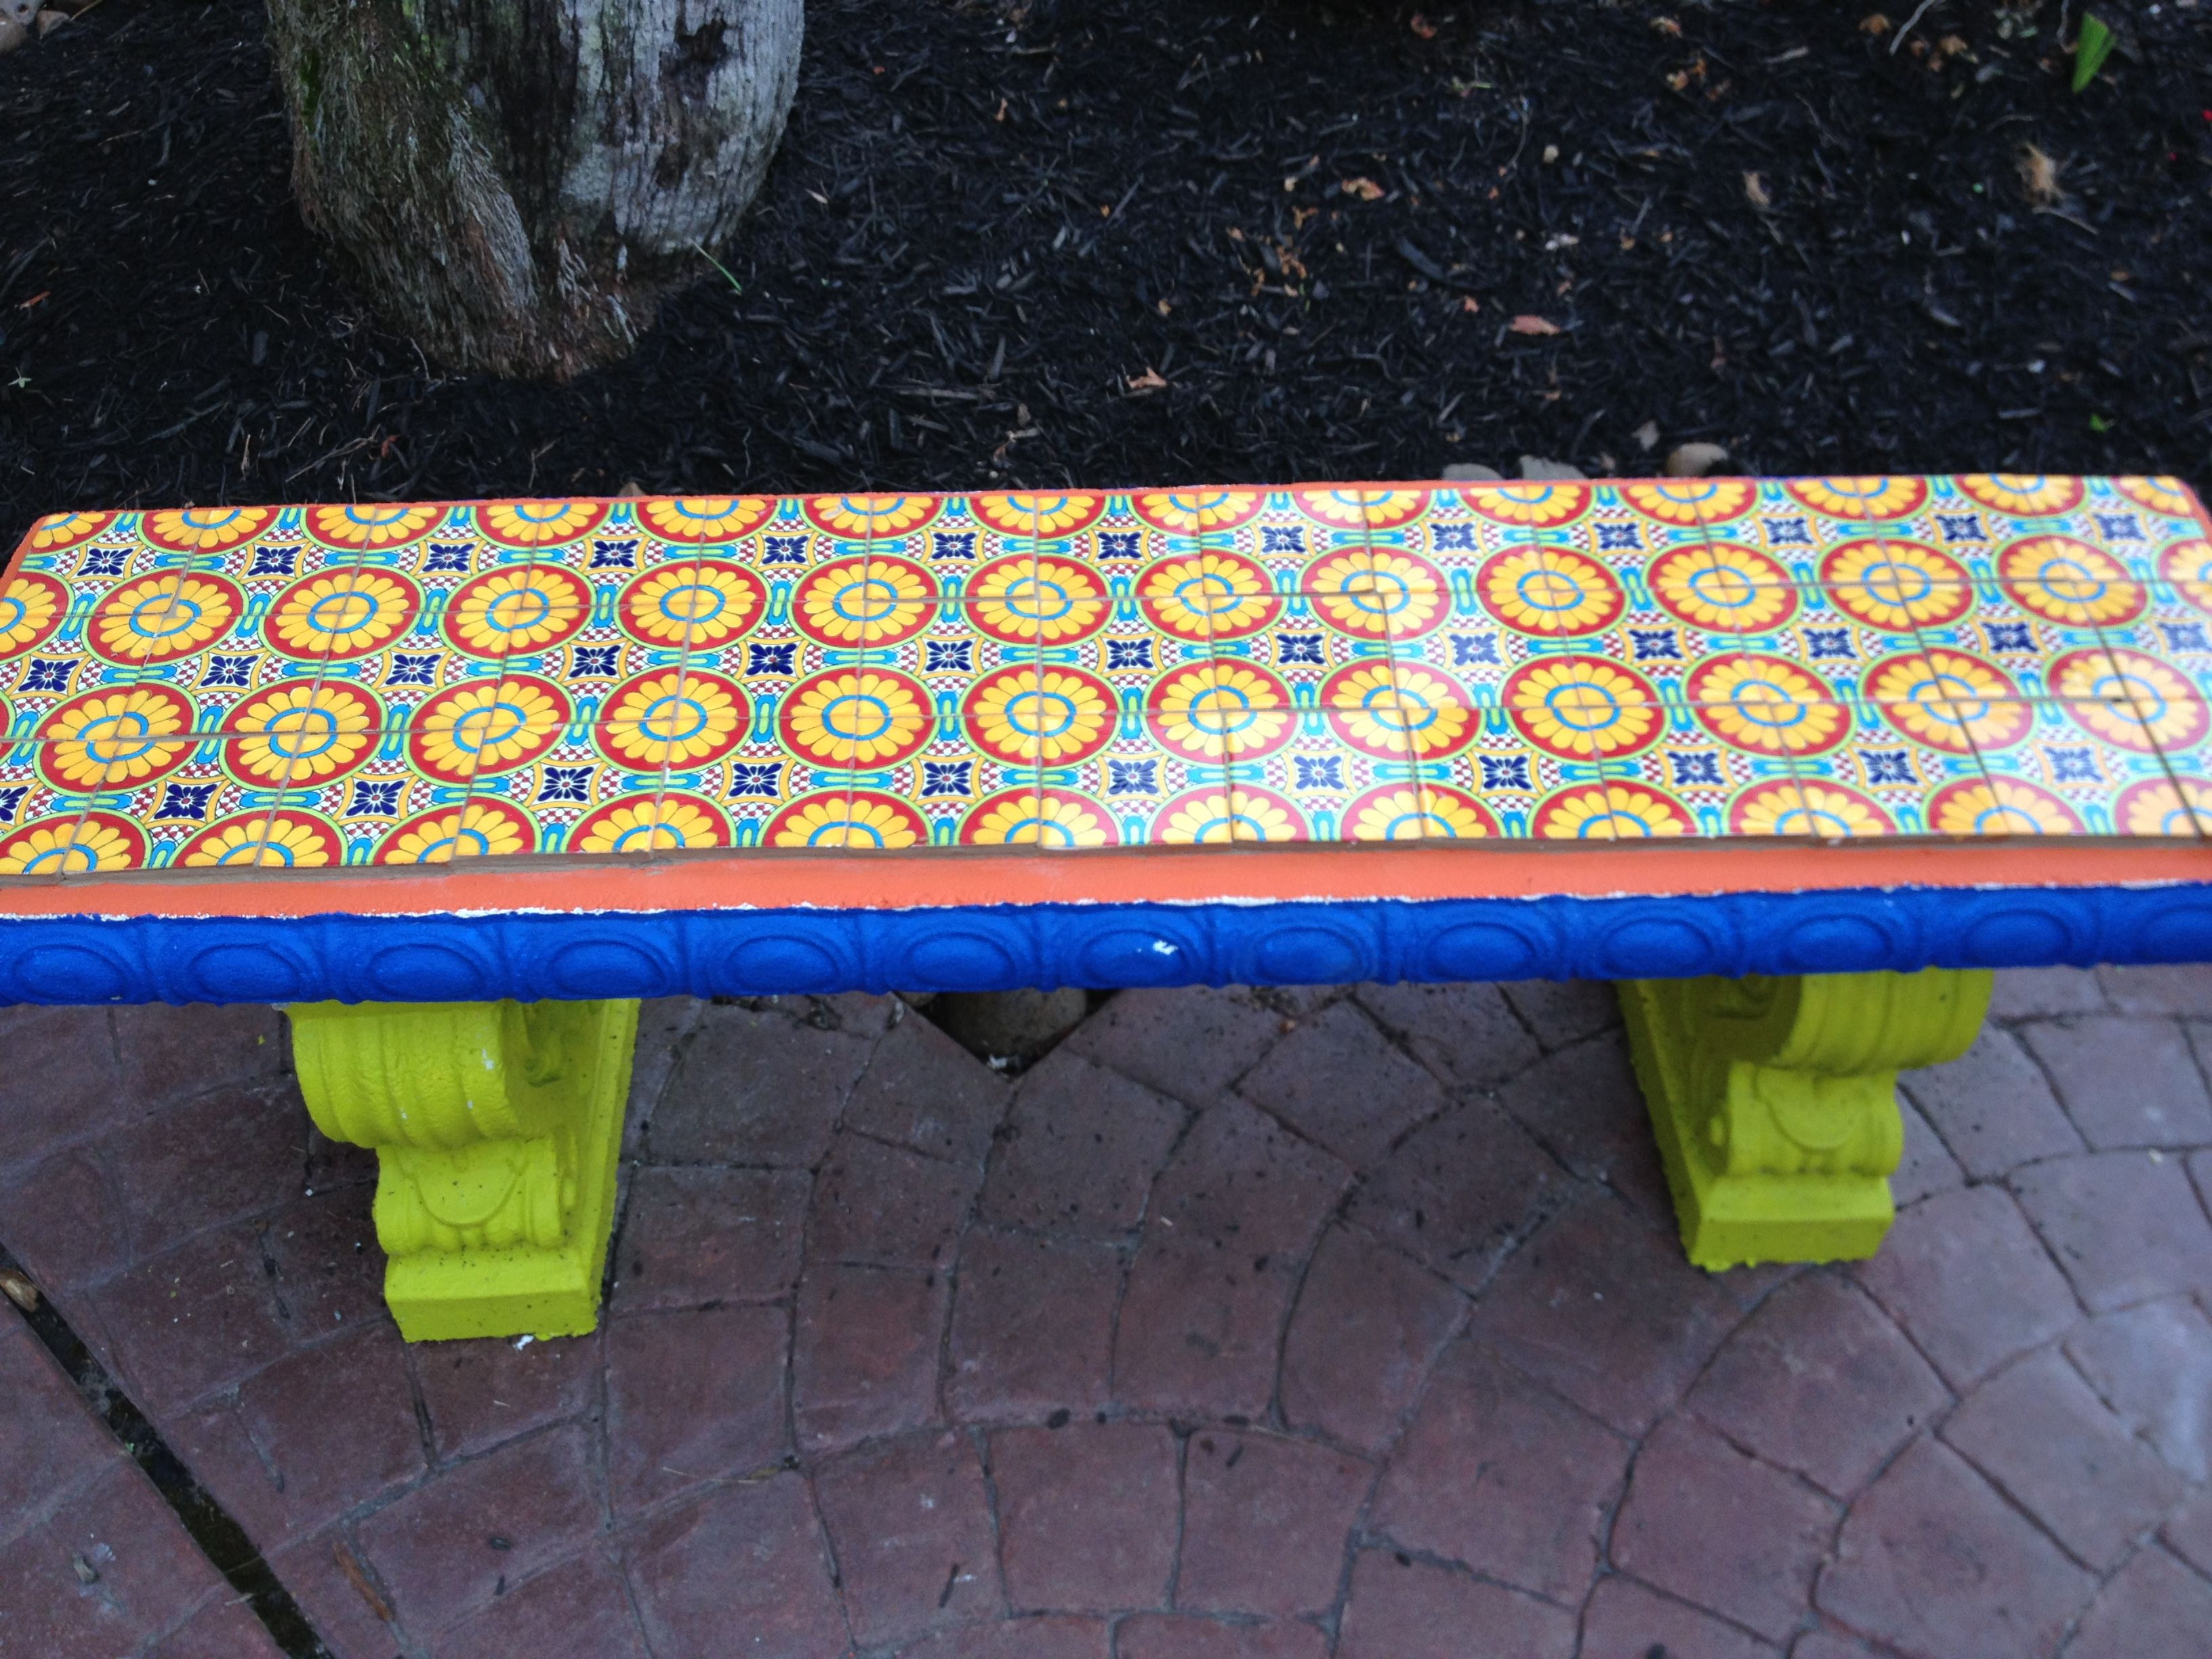 Tile Mexican Cement Bench - Year of Clean Water